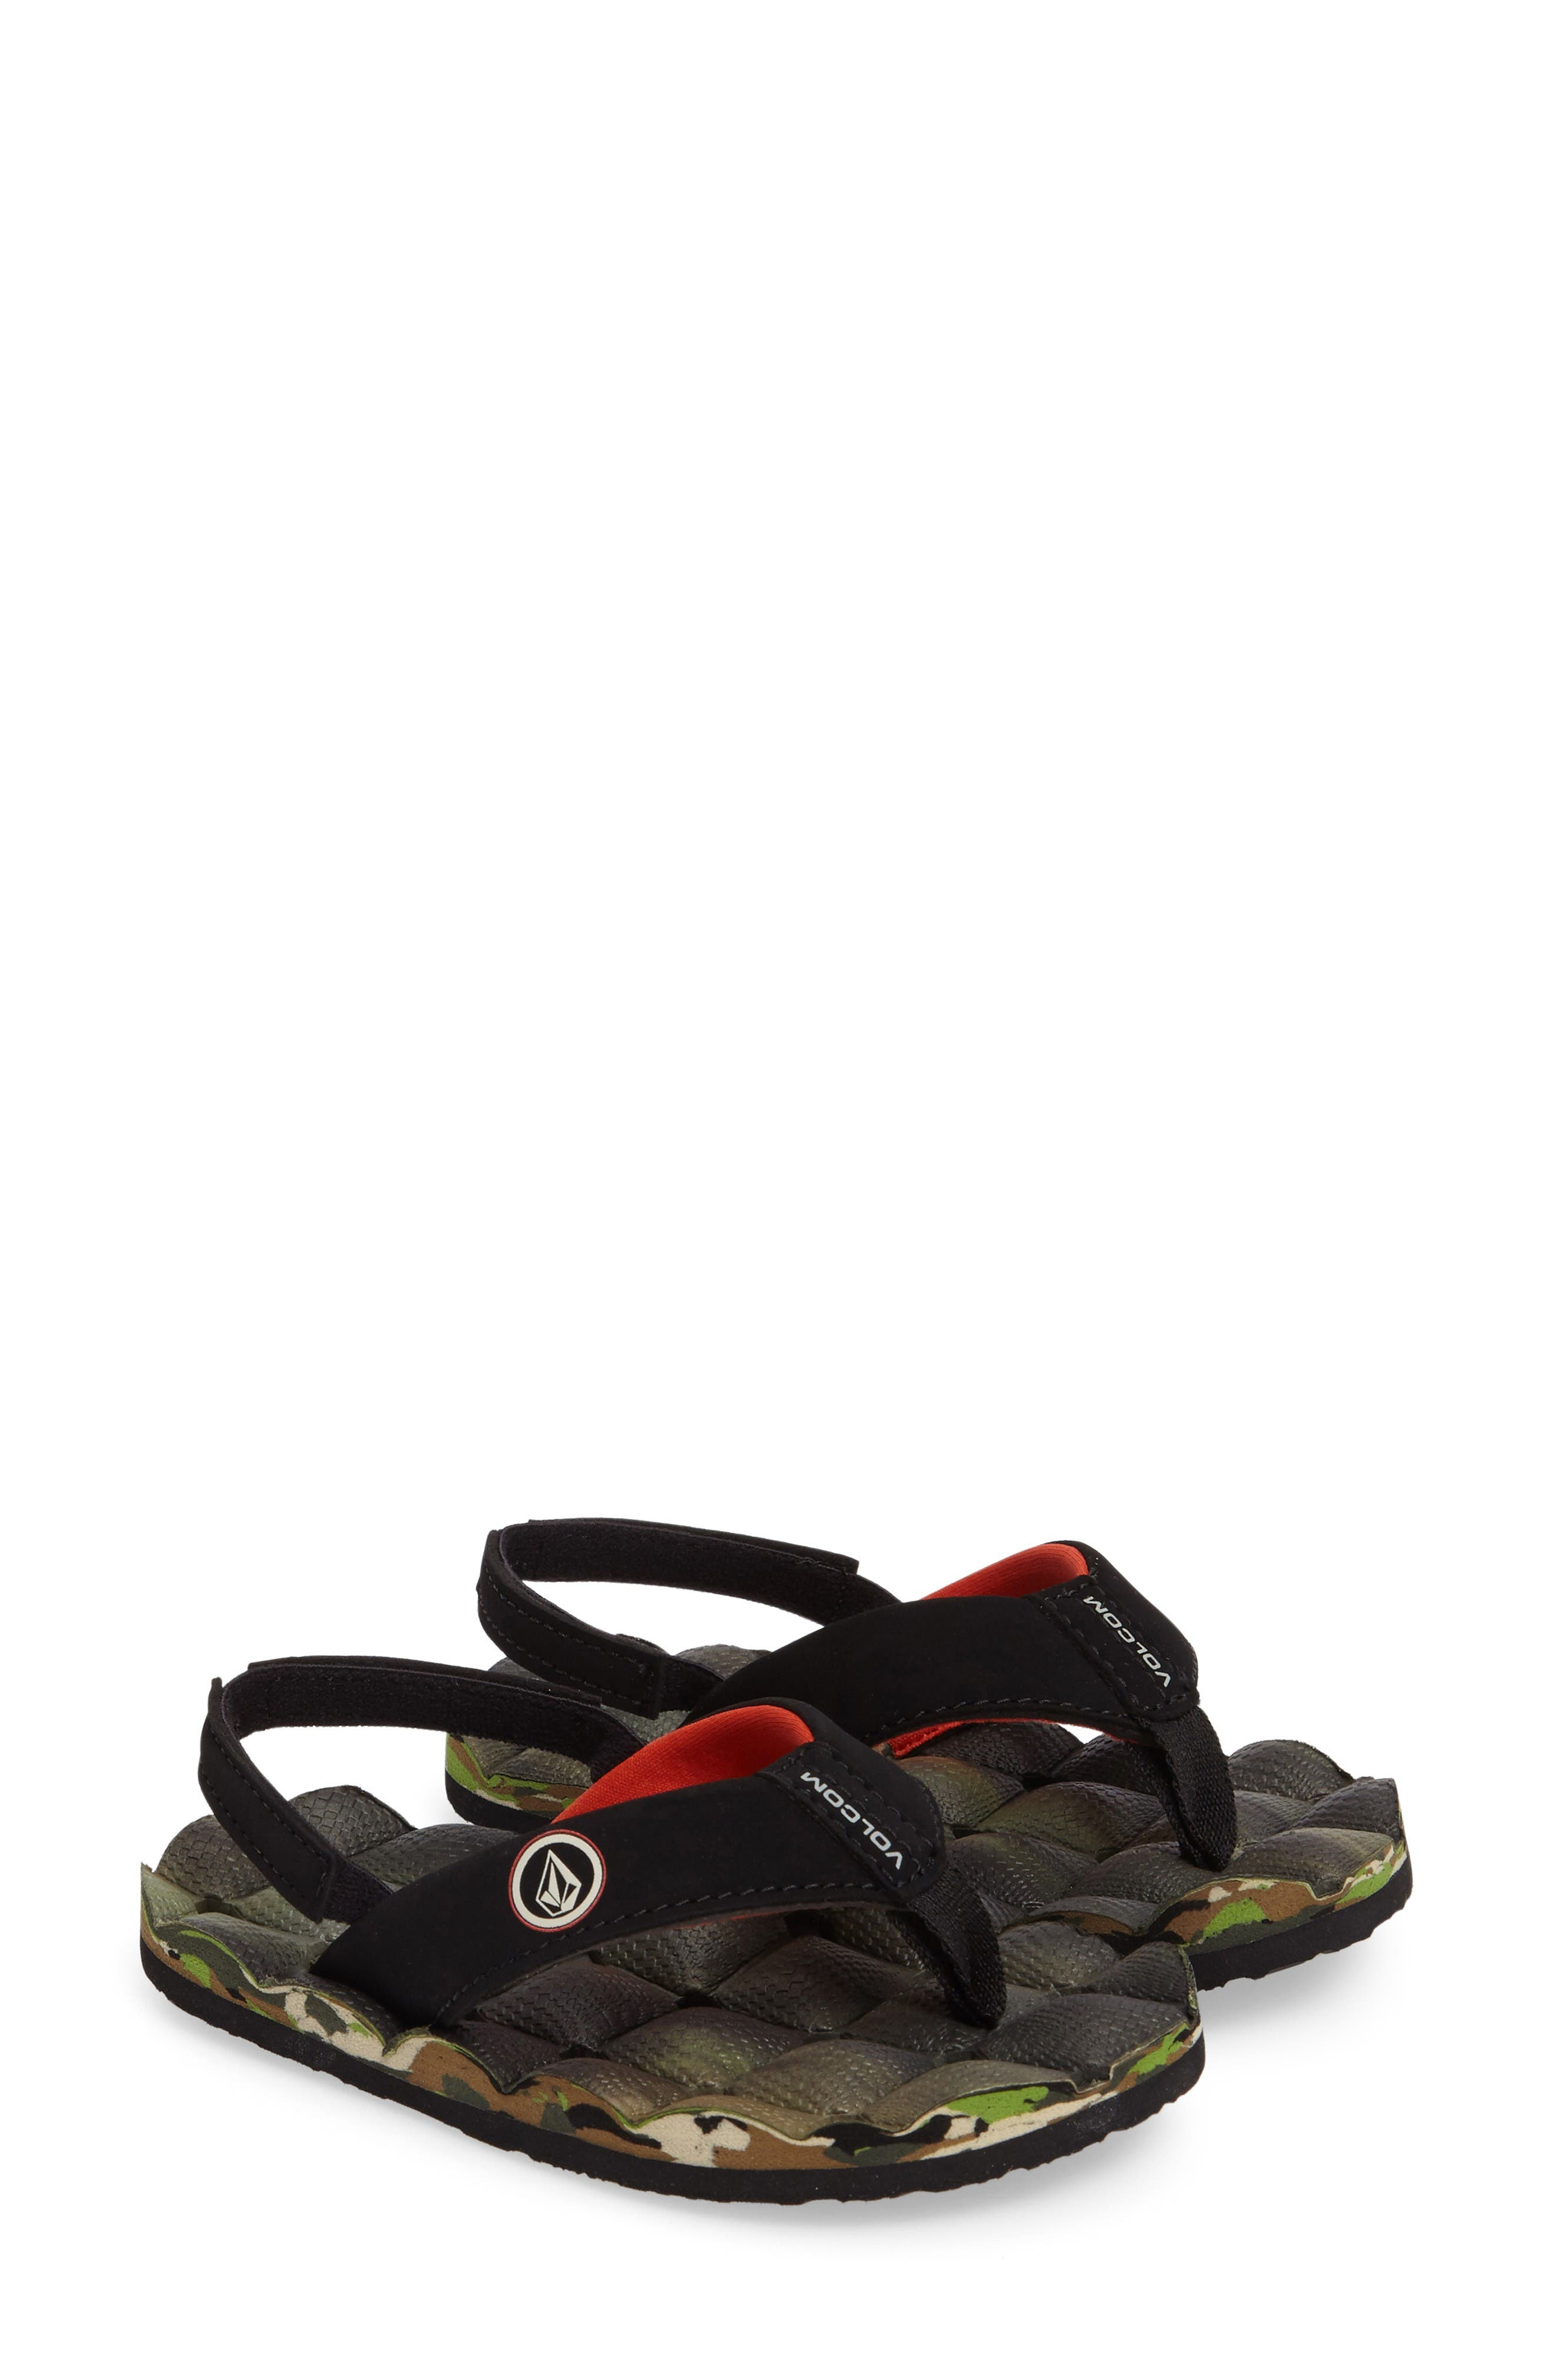 Alternate Image 1 Selected - Volcom 'Recliner' Flip Flop (Little Kid & Big Kid)